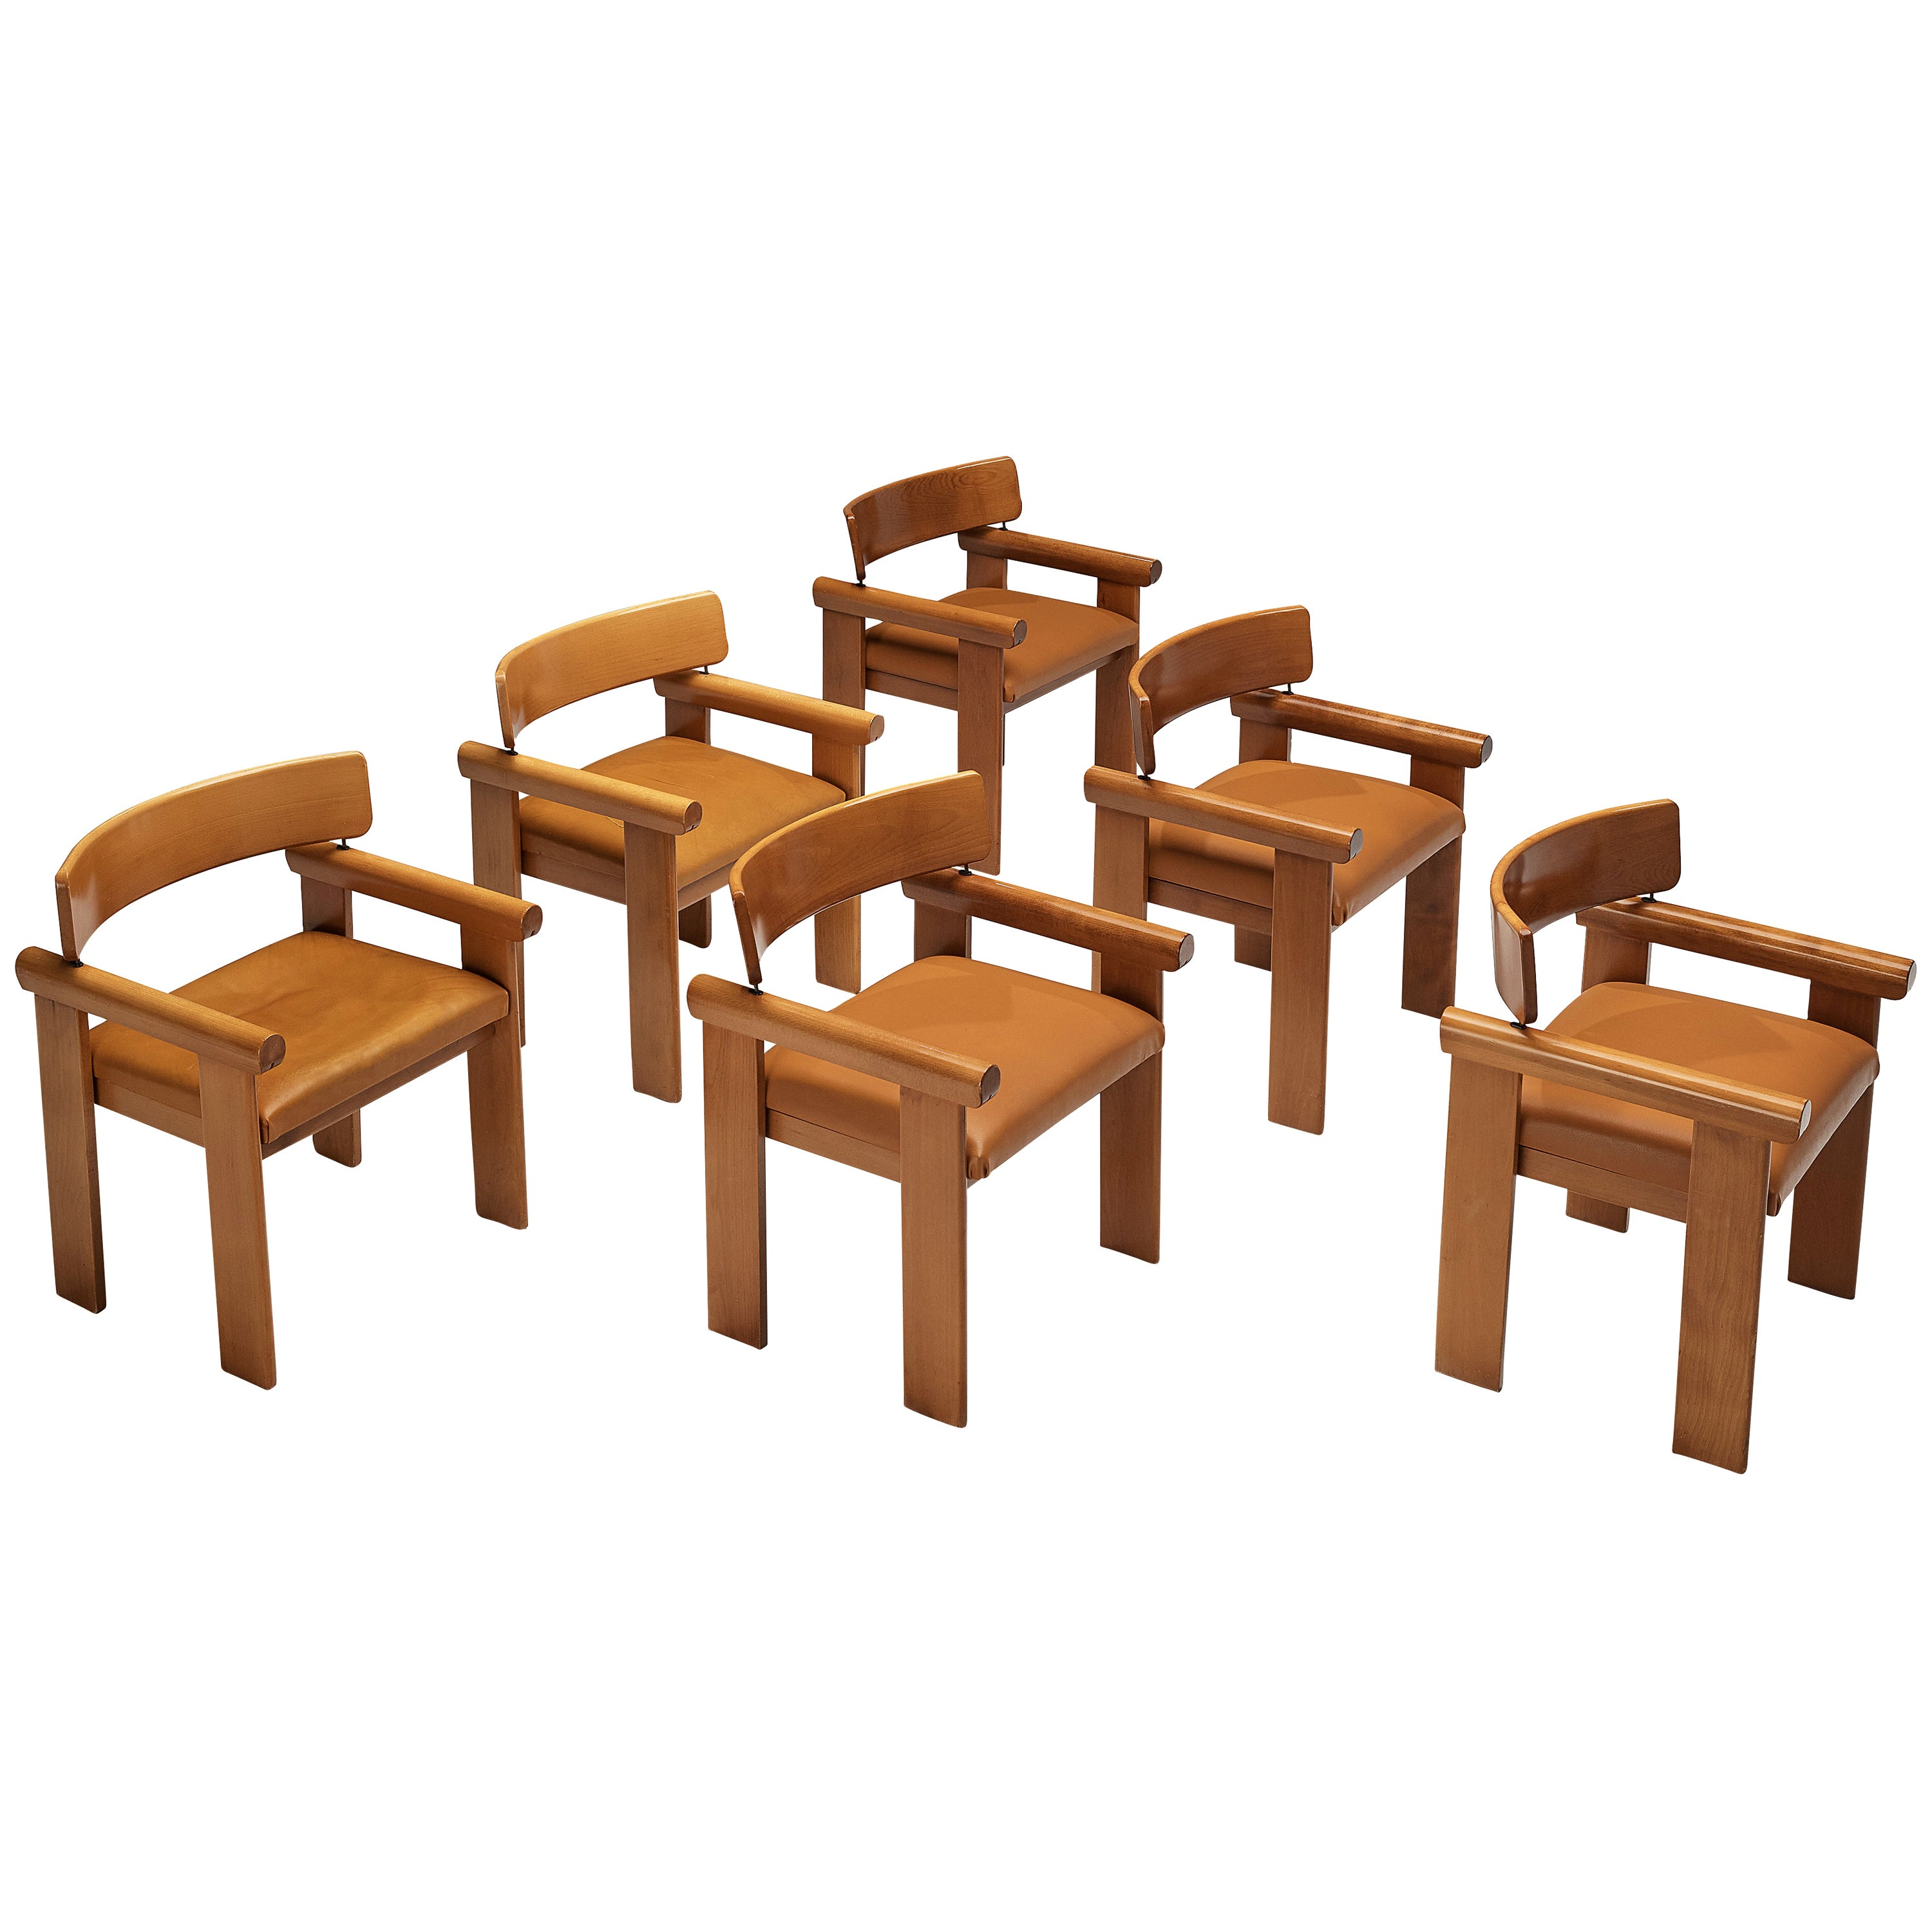 Italian Set of 6 Architectural Armchairs in Beech and Cognac Leather